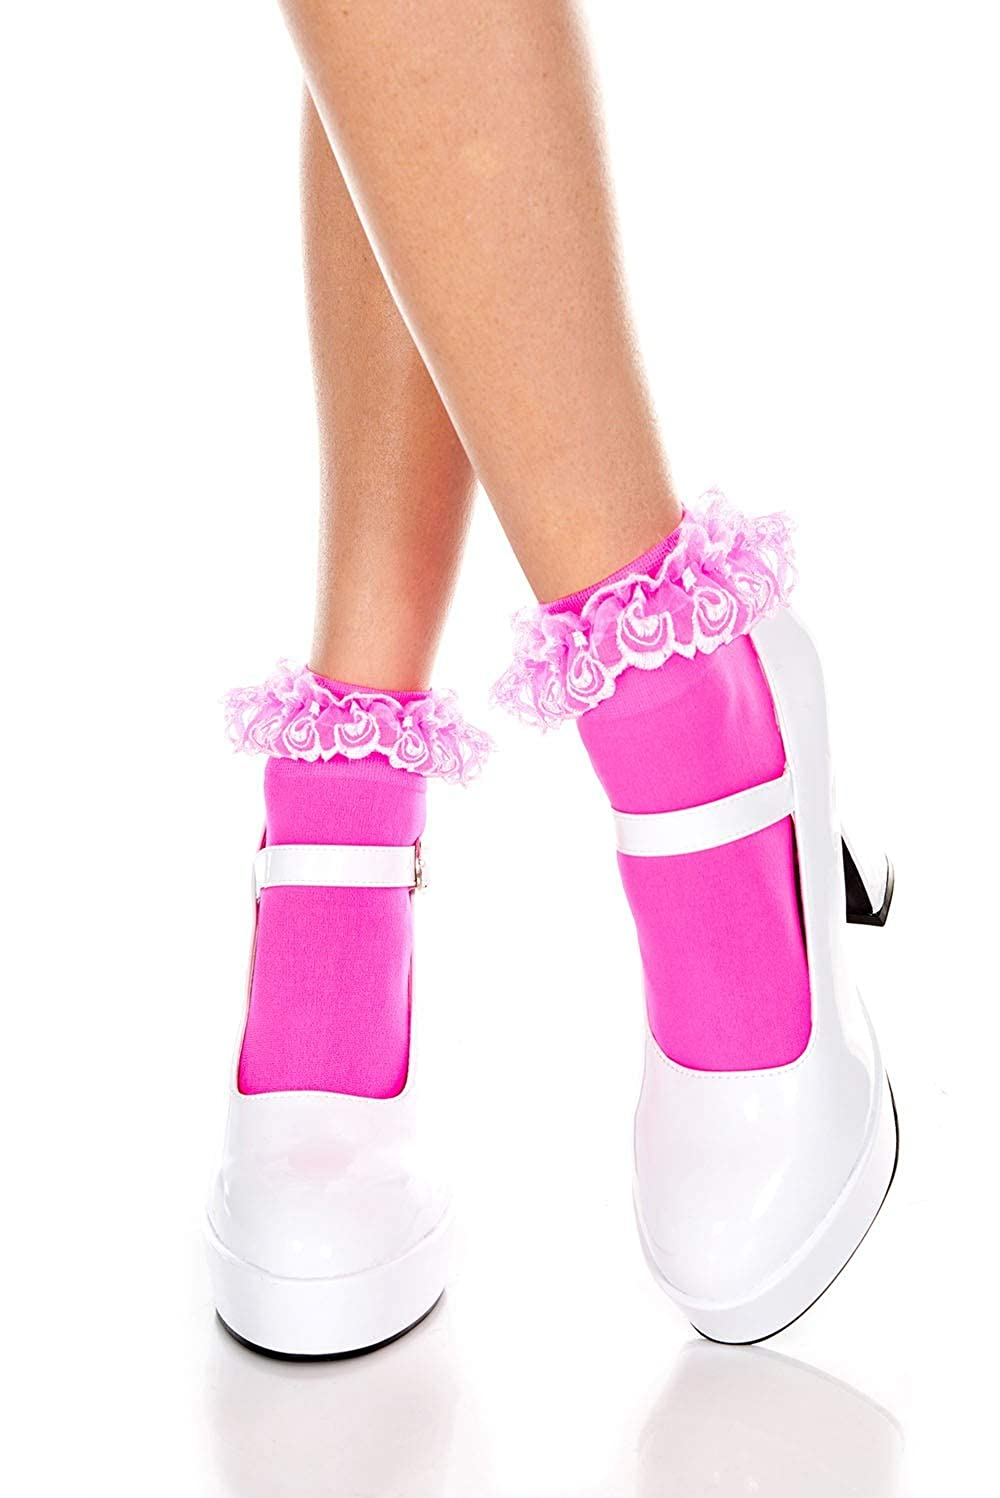 LADIES OPAQUE ANKLE HI HIGH SOCKS WITH LACE RUFFLE FRILL TOP ONE SIZE